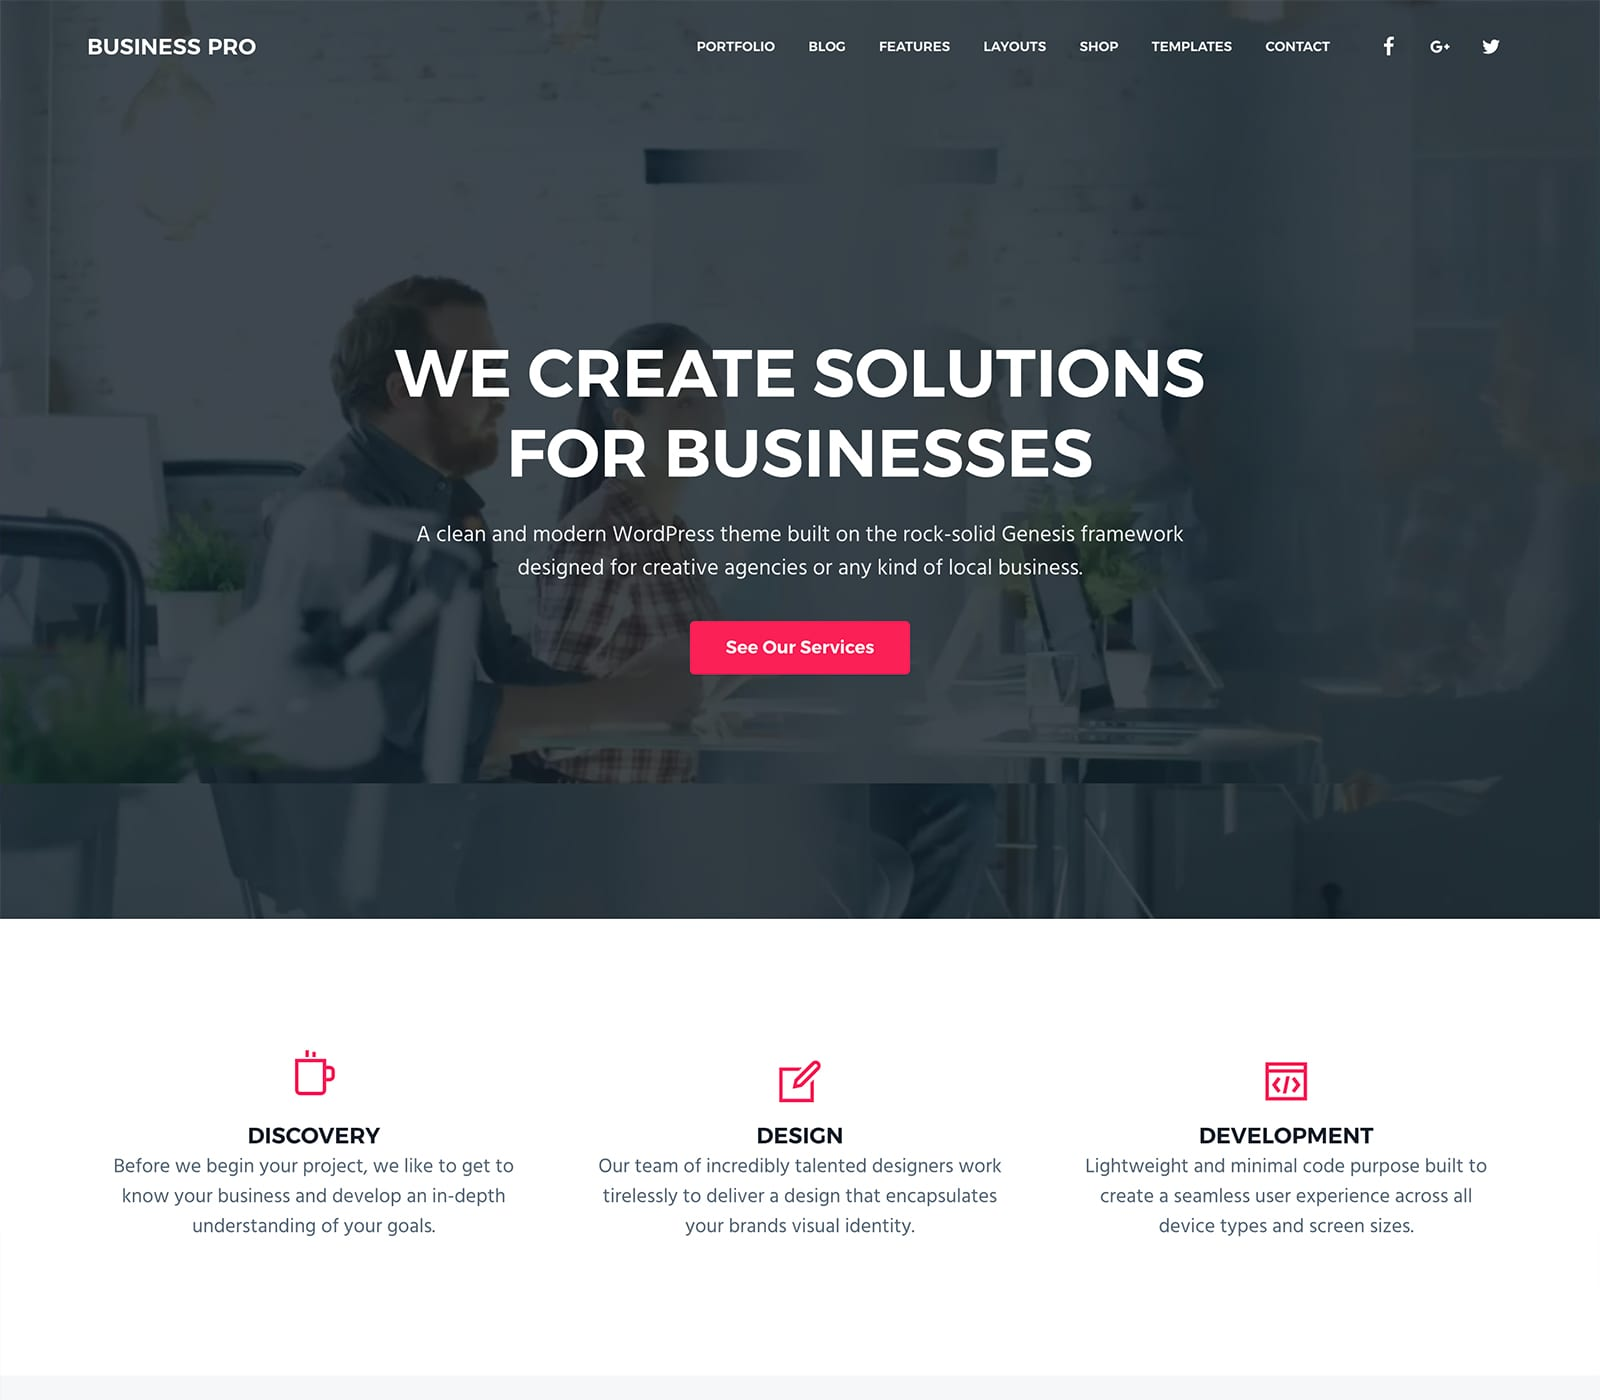 Business Pro is simple and flexible. The built-in core features offer WordPress functionality such as custom logos, headers, videos, and images. It offers image and video widgets. This theme is great for marketing agencies, small business professionals, service providers and more.  Anyone in business can appreciate the simplicity and professionalis elements of Business Pro.